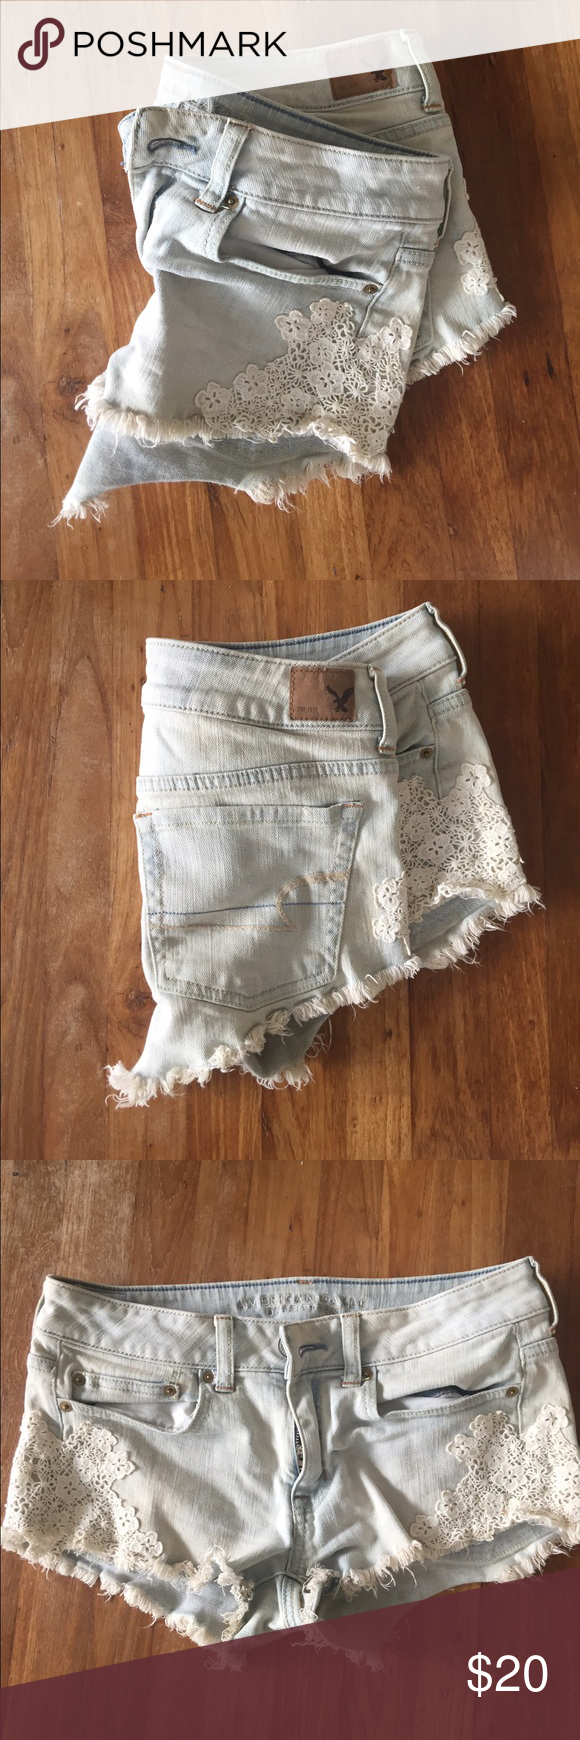 American eagle Jean shorts Brand new size 6. No problems not even worn. Bought and they were to big for me. American Eagle Outfitters Shorts Jean Shorts